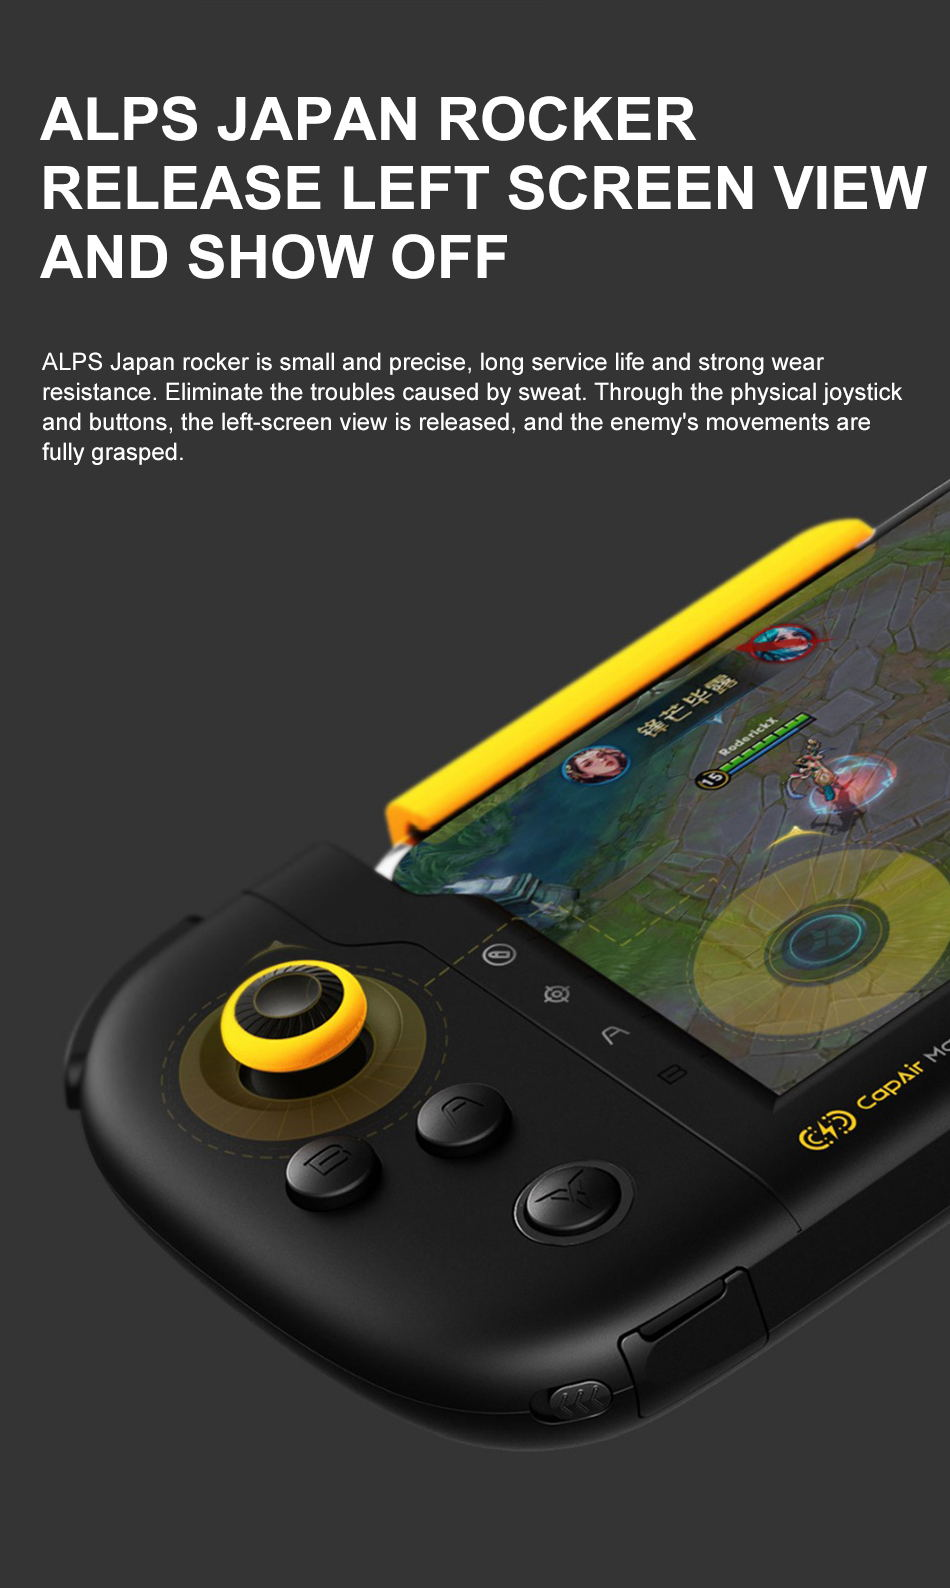 xiaomi flydigi one-handed gamepad for sale